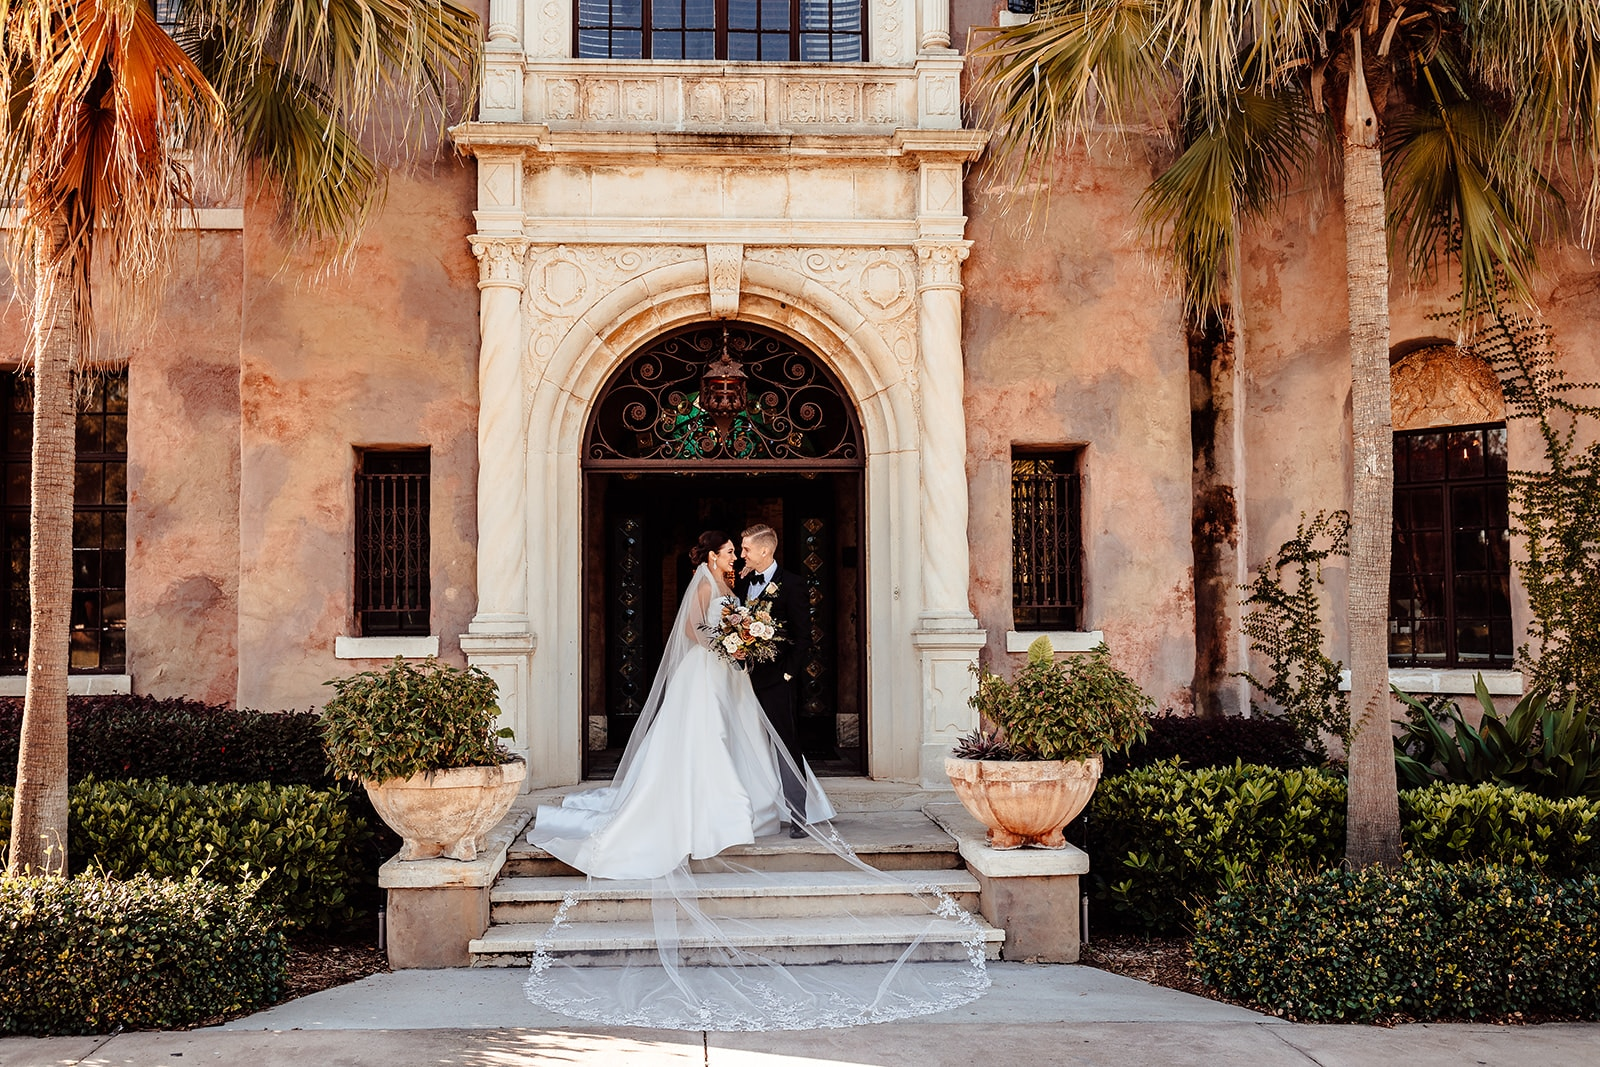 far away shot of bride and groom looking at each other on the front porch of historic mansion with wrought iron door and frame